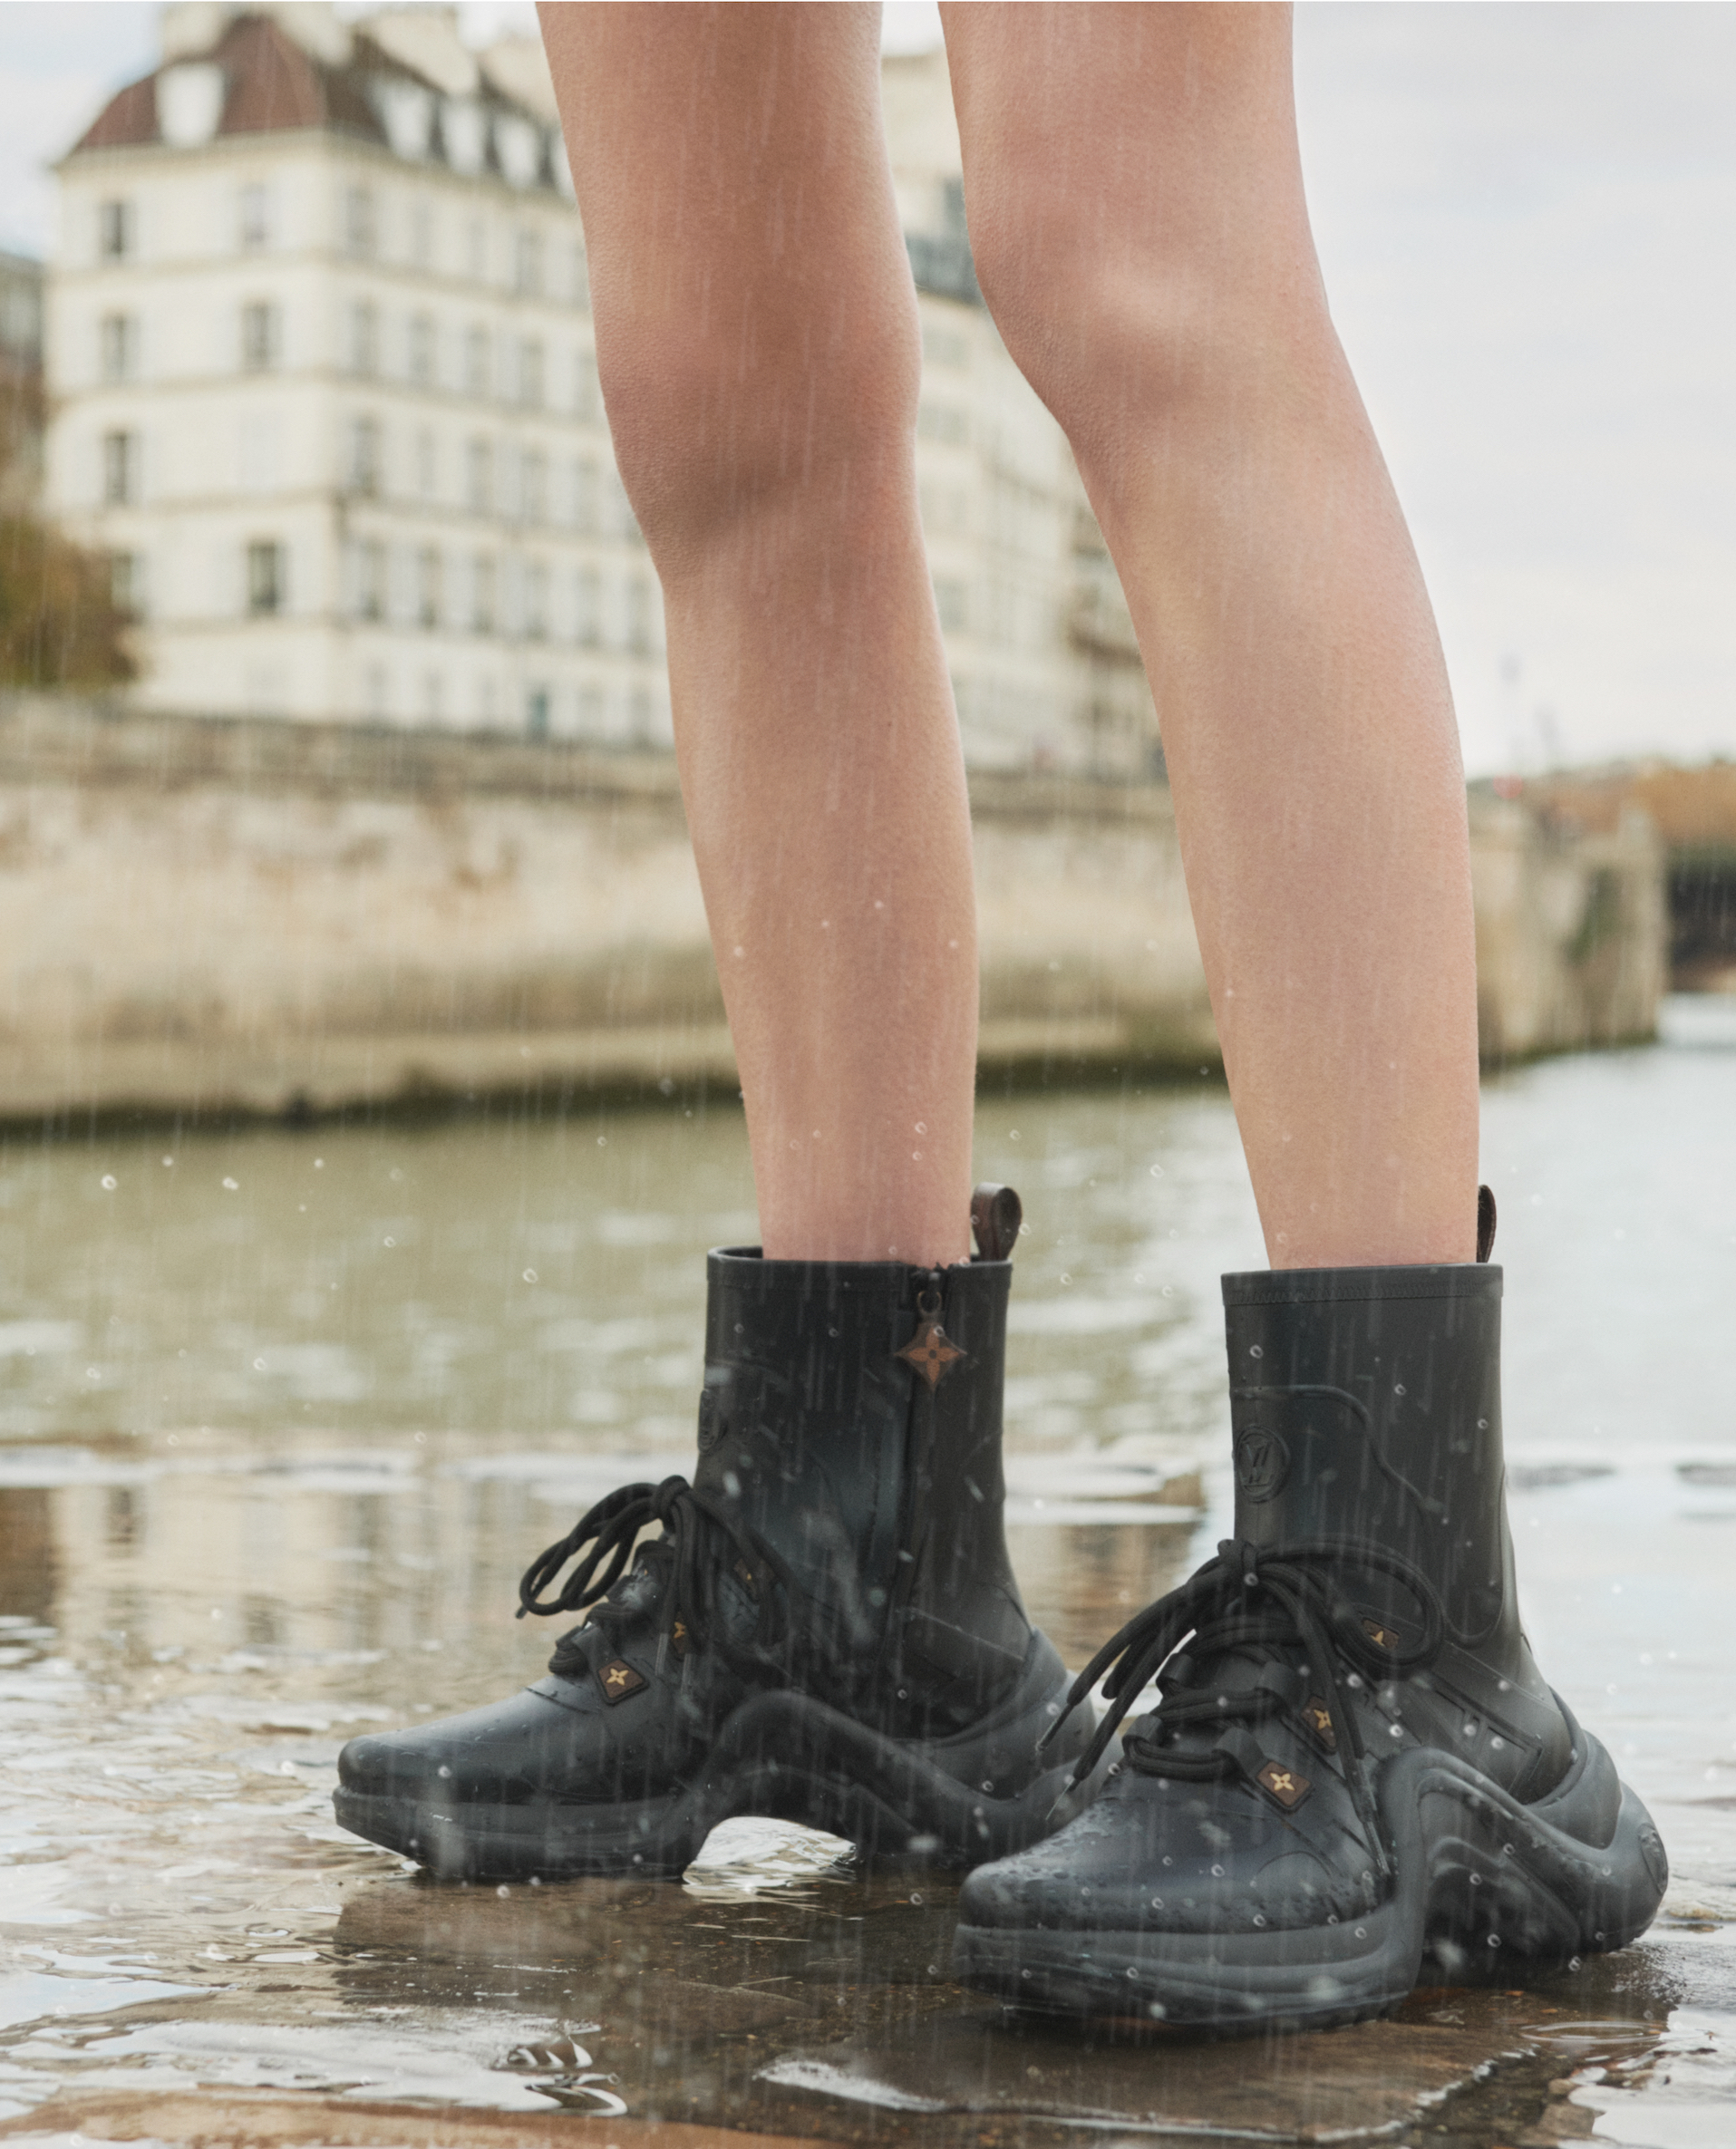 Louis Vuitton Archlight rubber sneaker boots